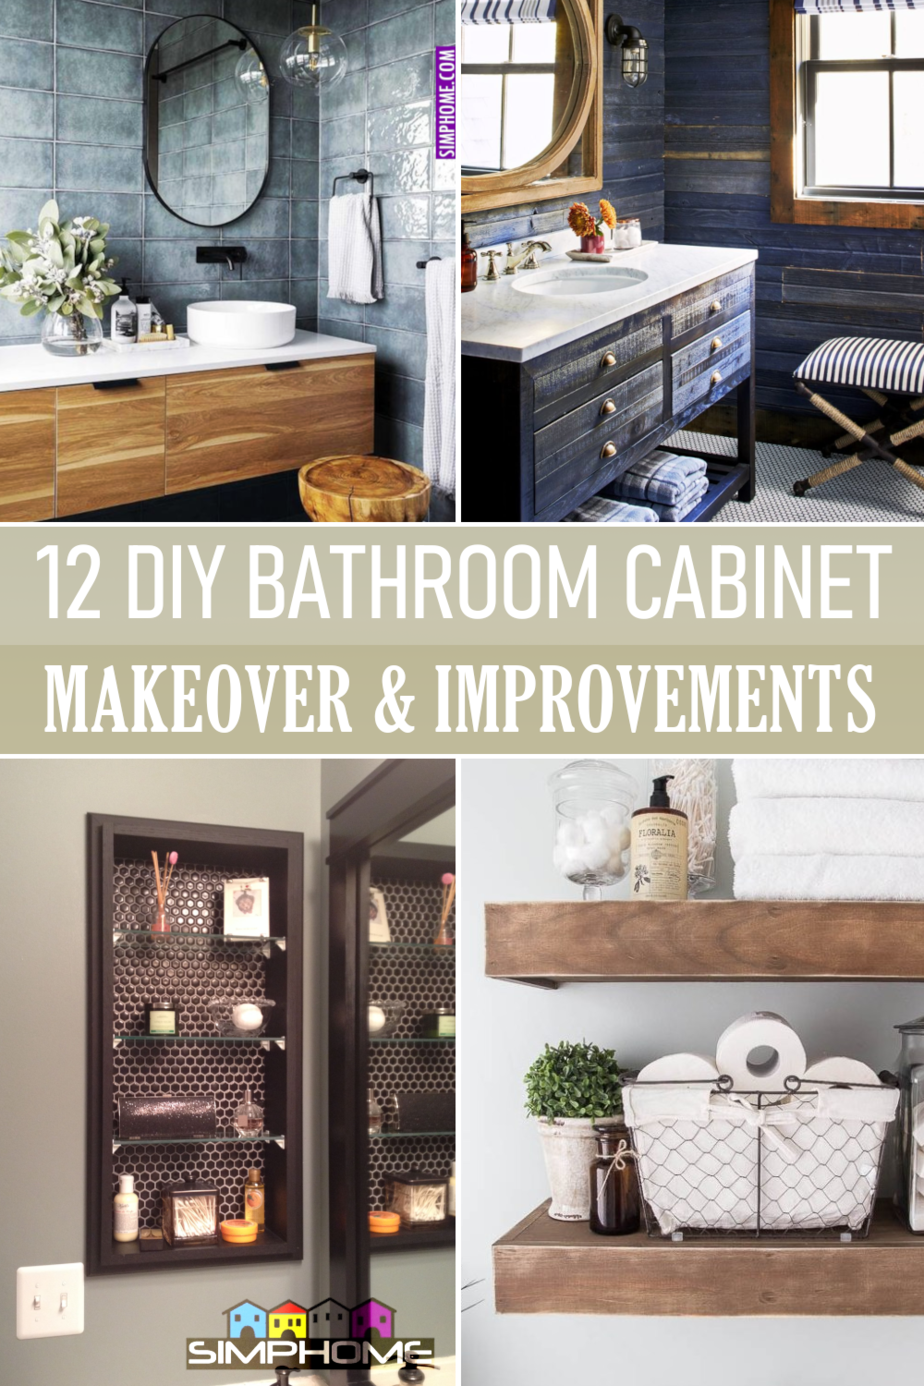 12 Bathroom Cabinet Makeovers via Simphome.comFeatured Image